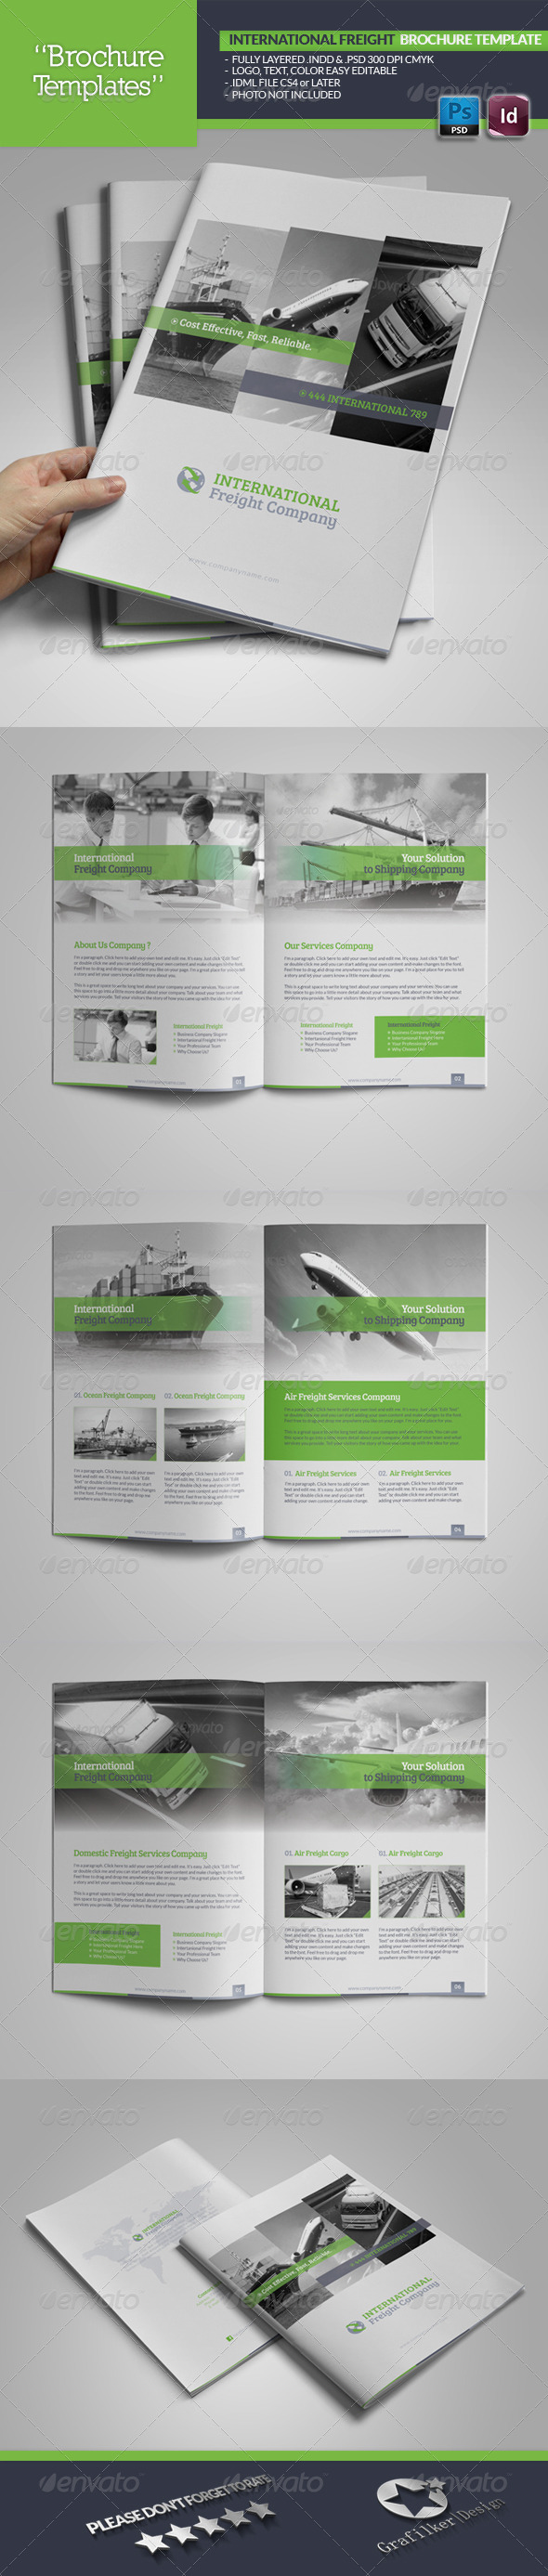 GraphicRiver International Freight Brochure Template 5277381